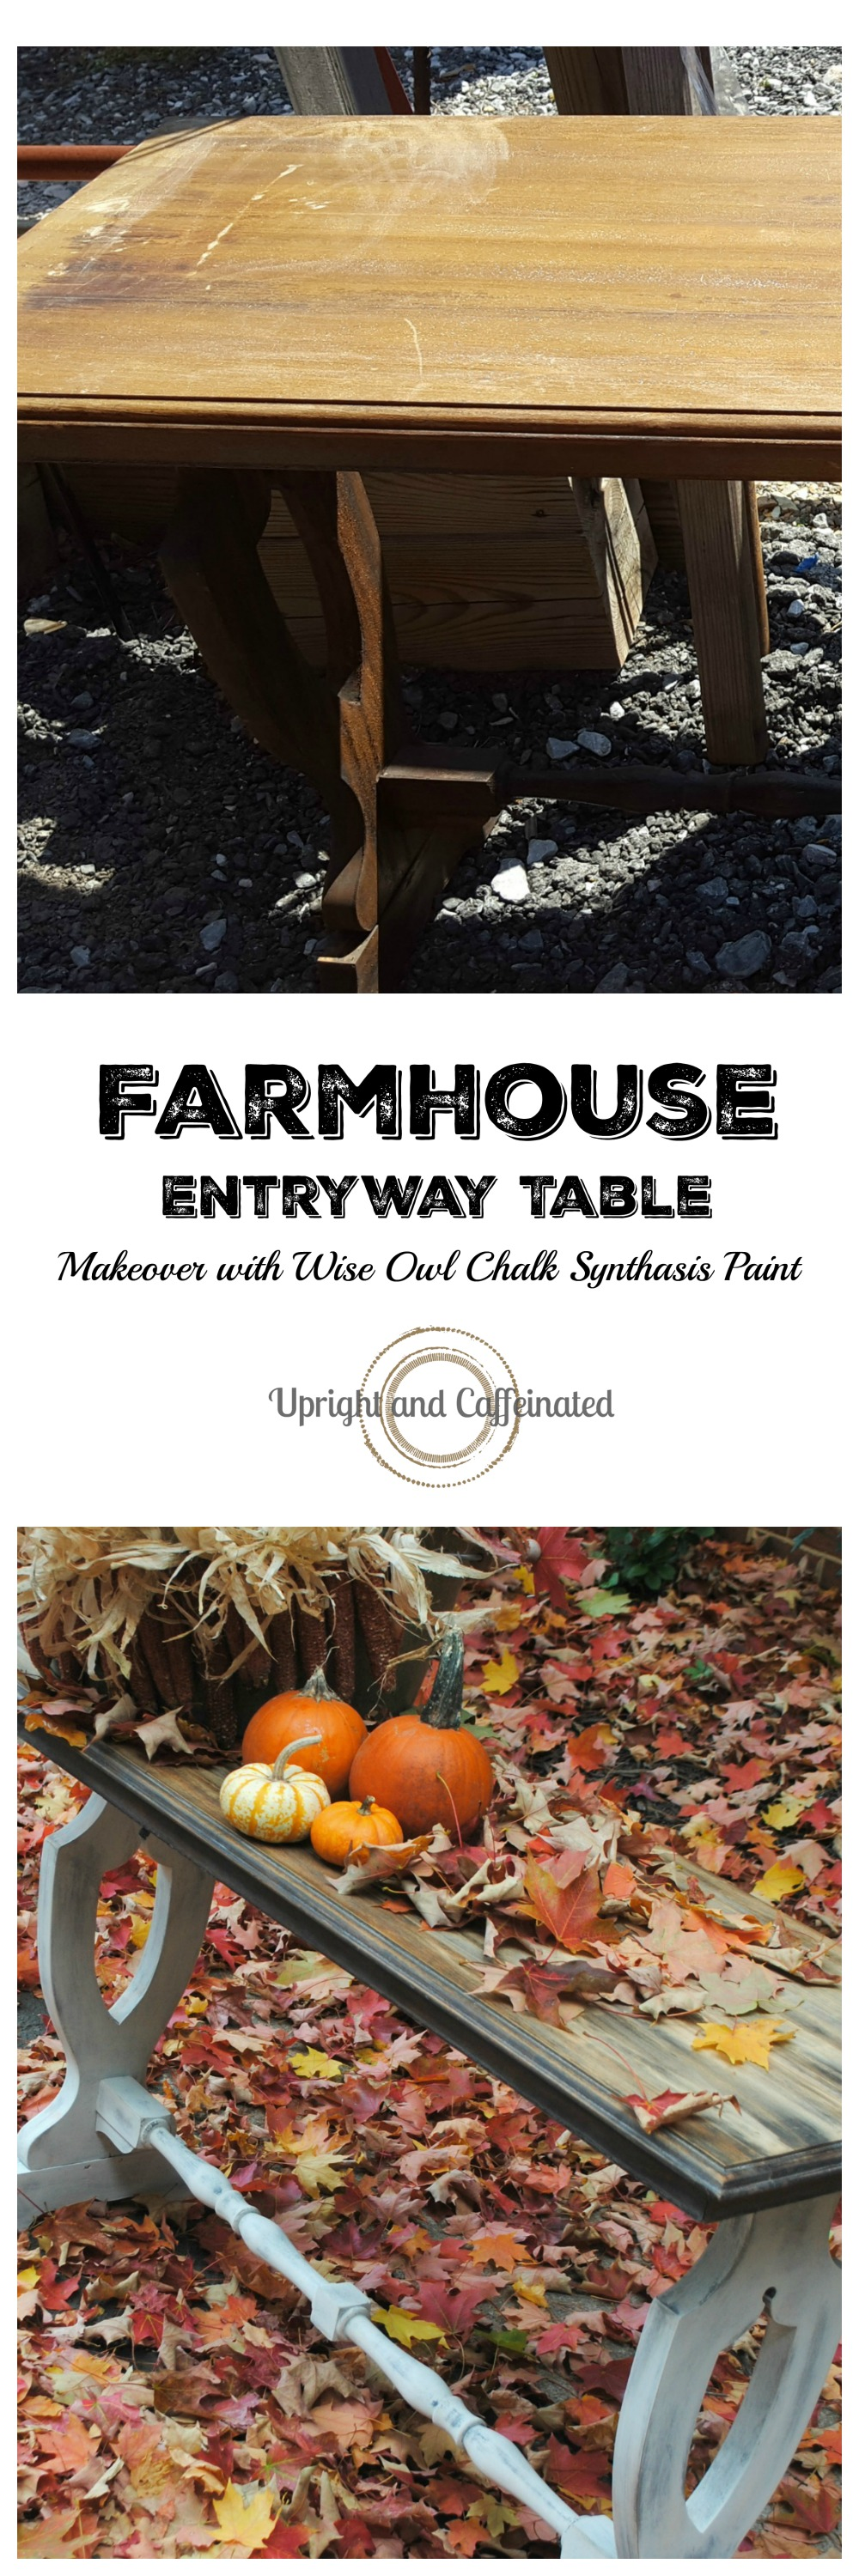 Check out this transformed table! Farmhouse Entryway Table makeover using Wise Owl Chalk Synthesis Paint.